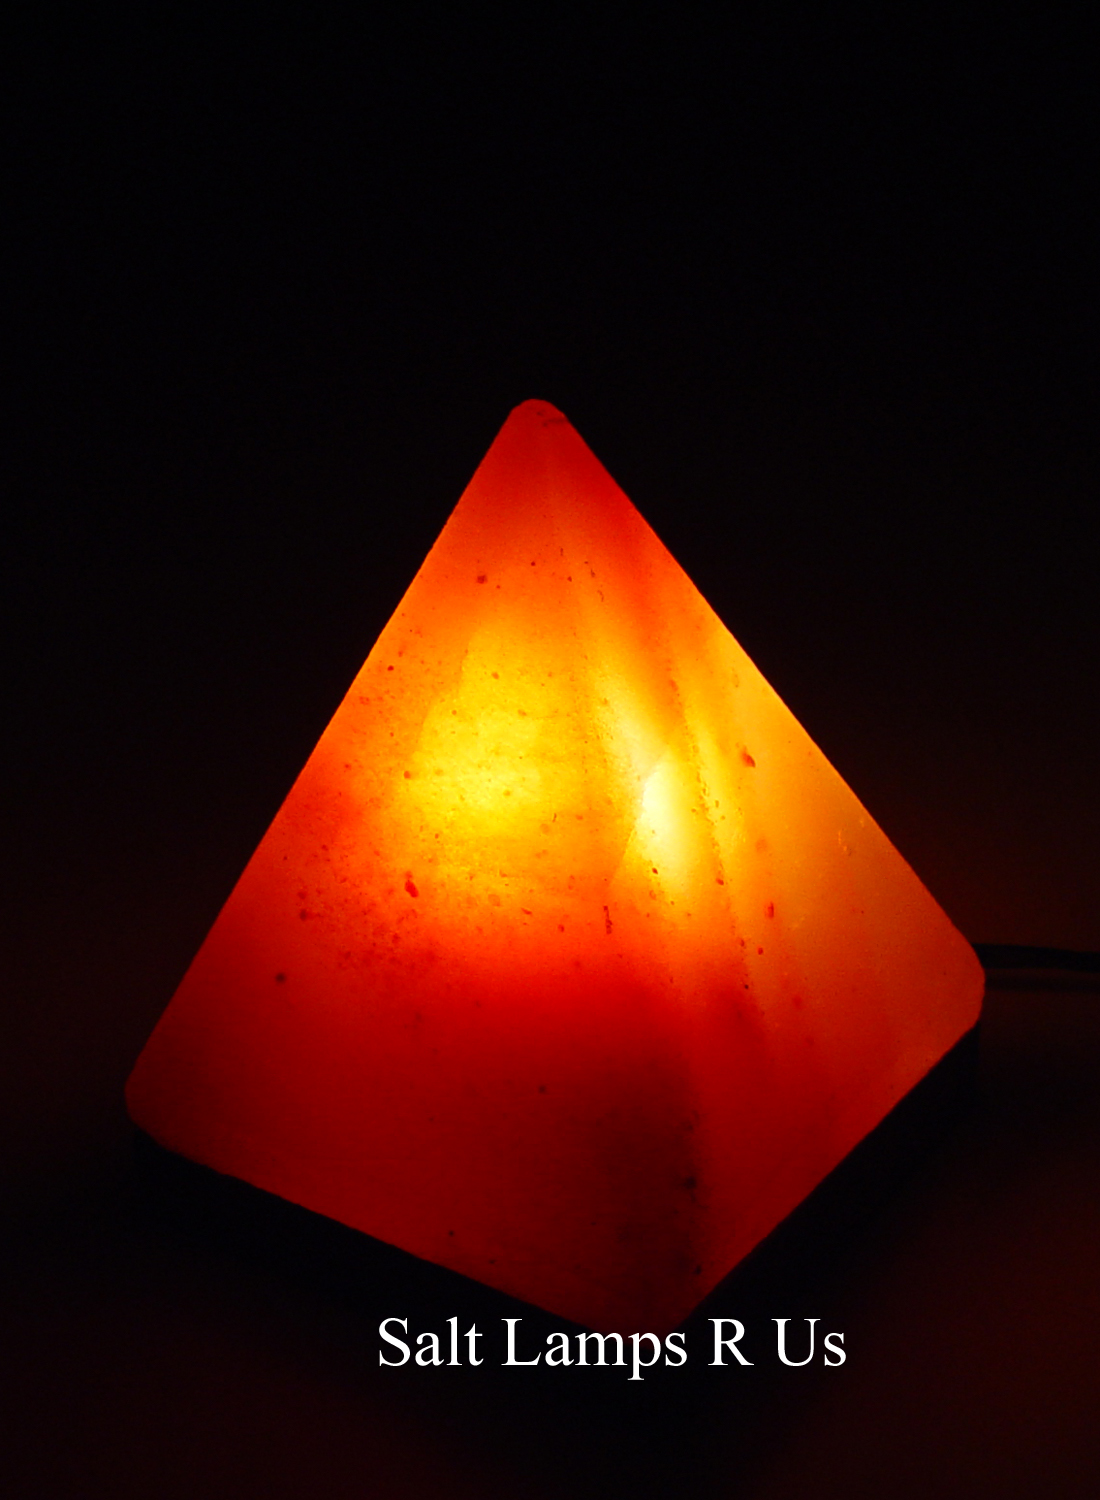 Salt Lamps Are Us : Pyramid Salt Lamp Himalayan Pink Crystal Attached Wood Base Special Offer Saltlamps-R-Us